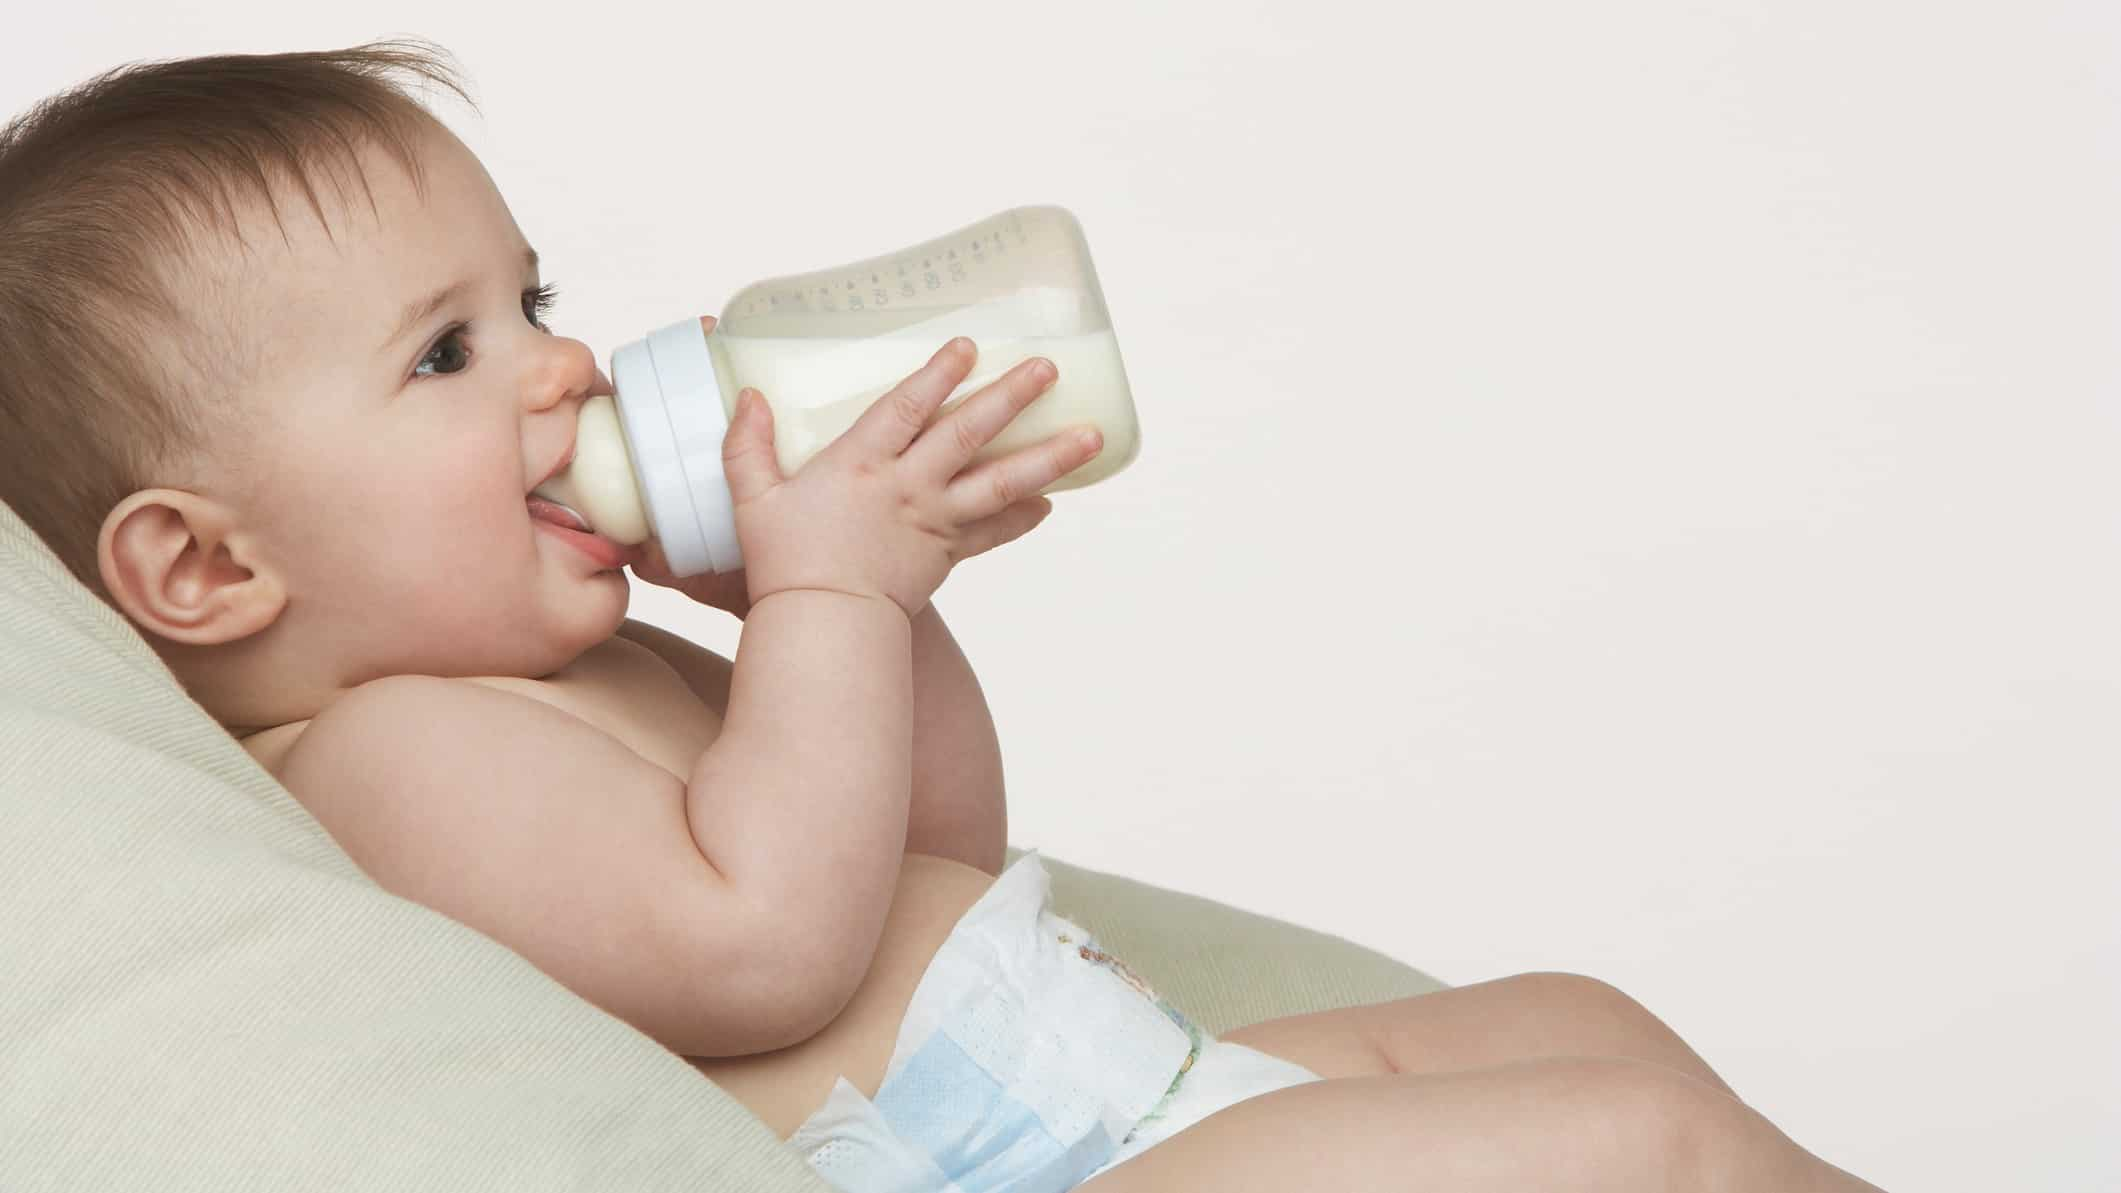 A happy baby drink milk formula, indiacting a rising share price for milk companies